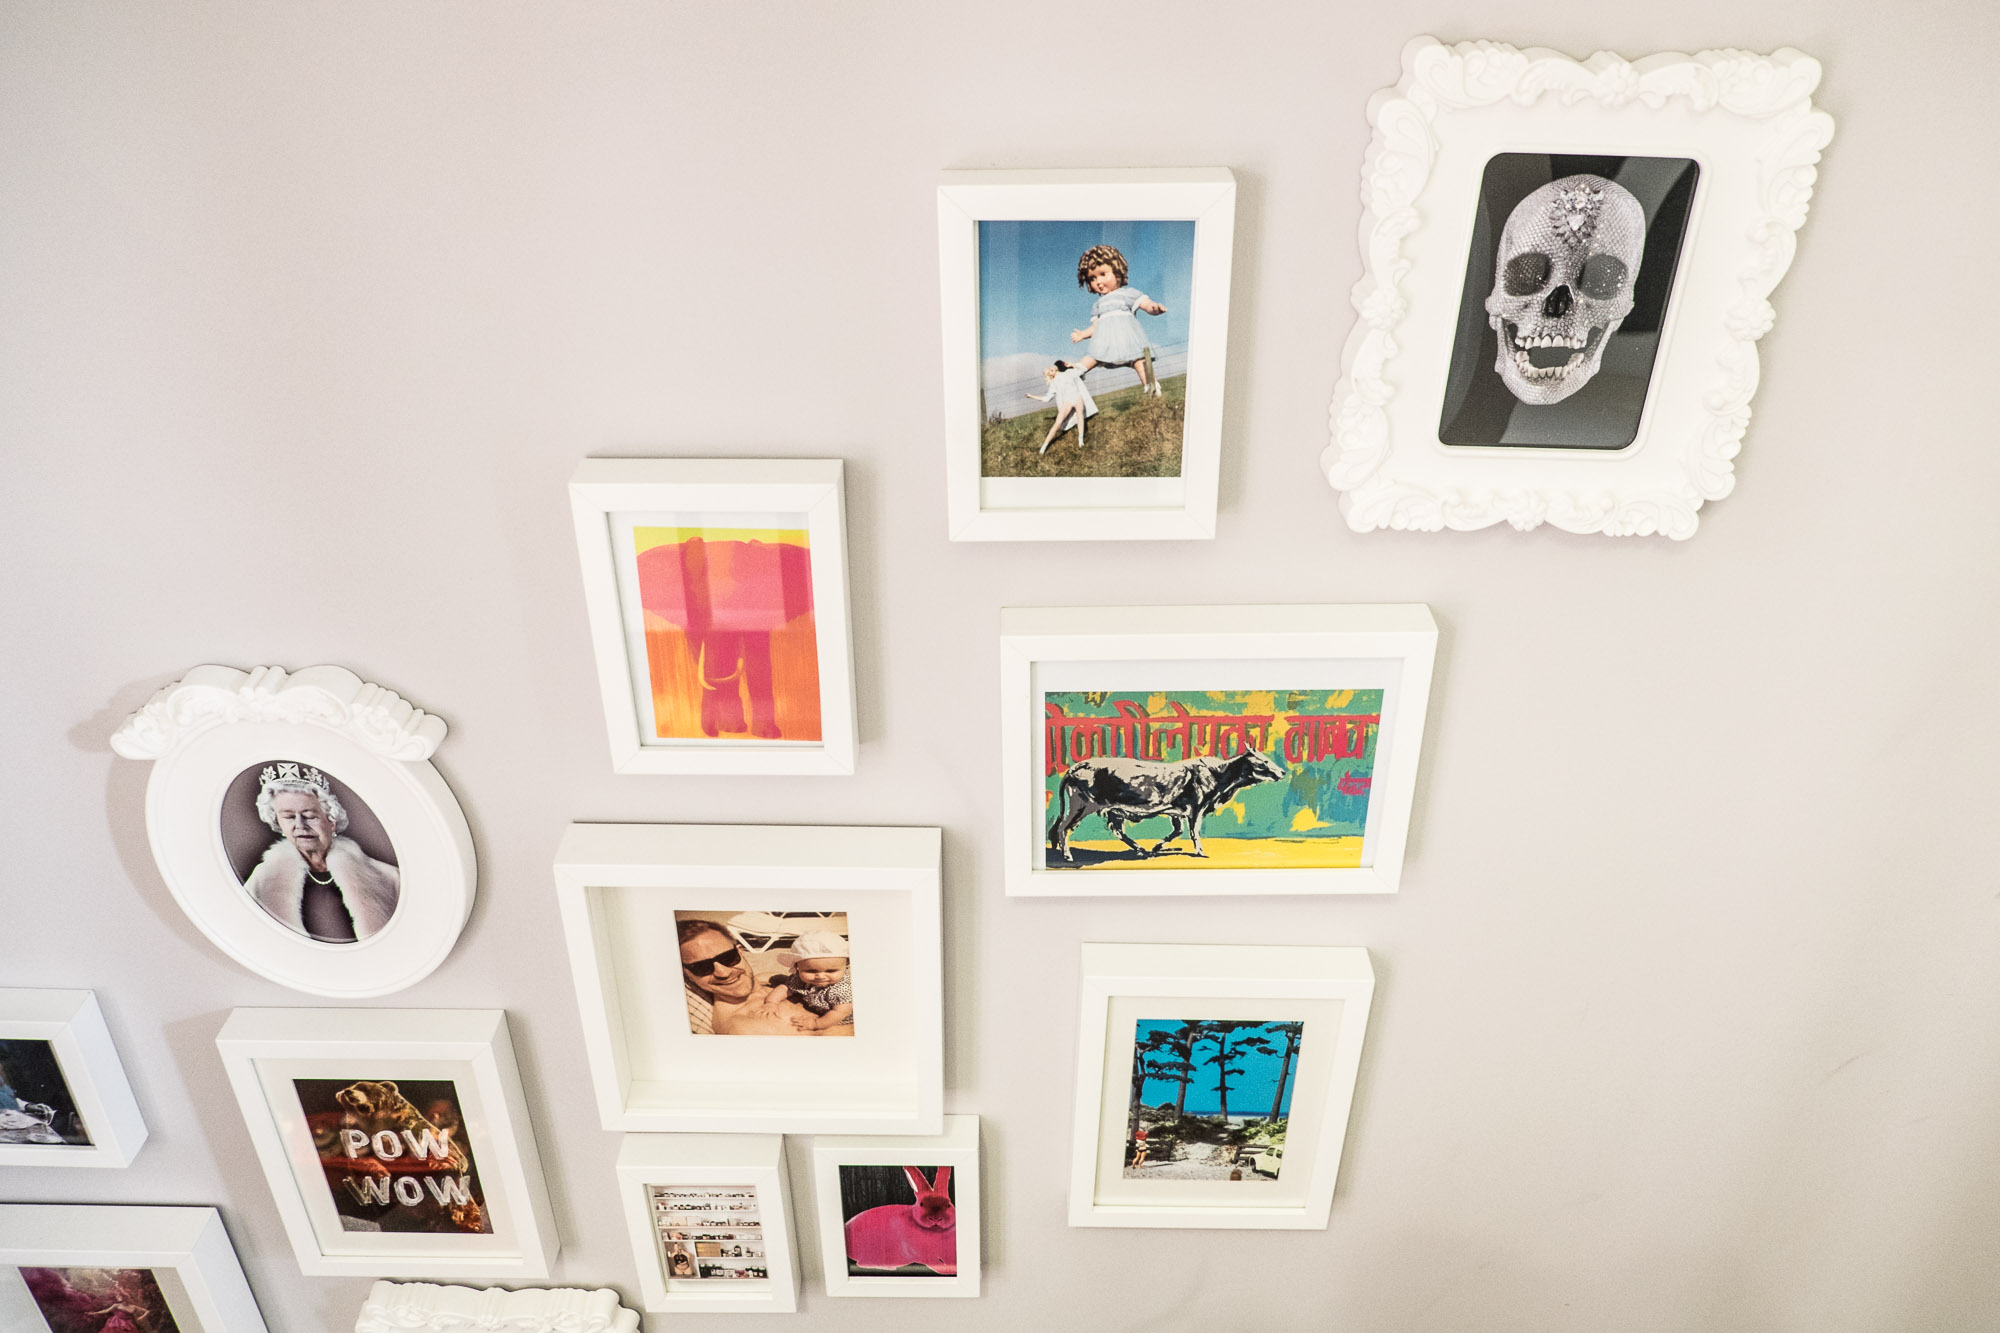 3. Turn your staircase into a gallery